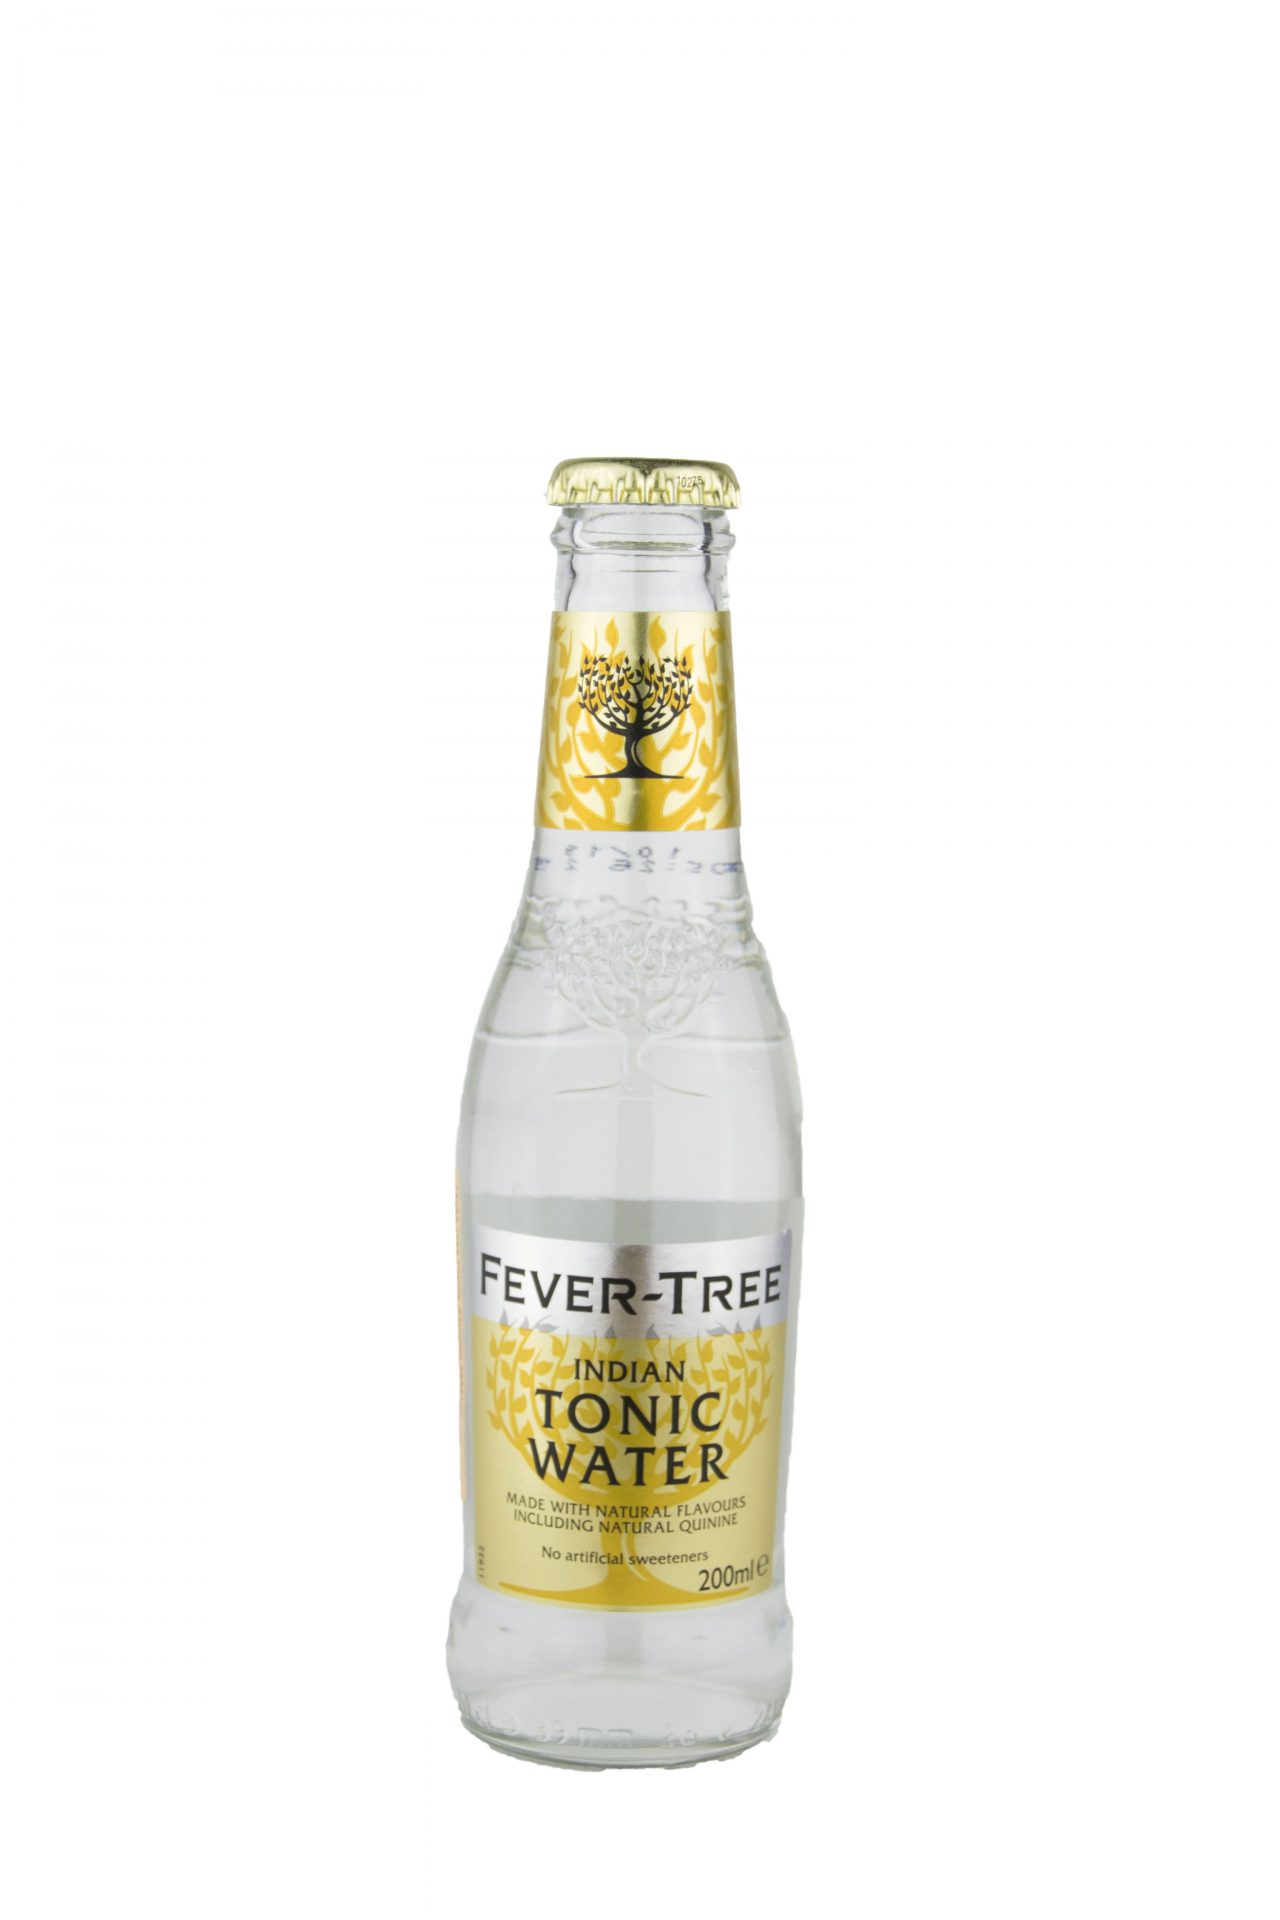 Fever-Tree – Indian Tonic Water